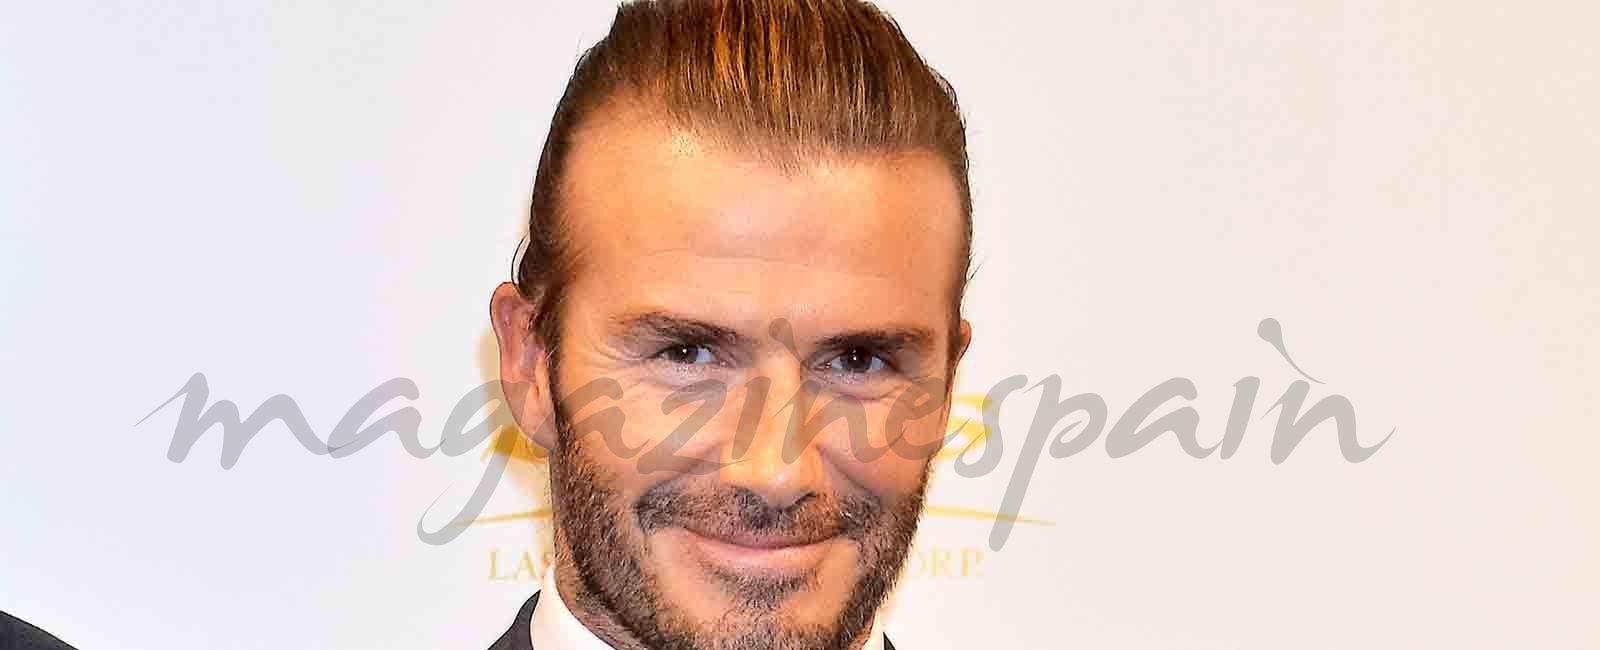 Así eran, Así son: David Beckham 2006-2016 – VIDEO